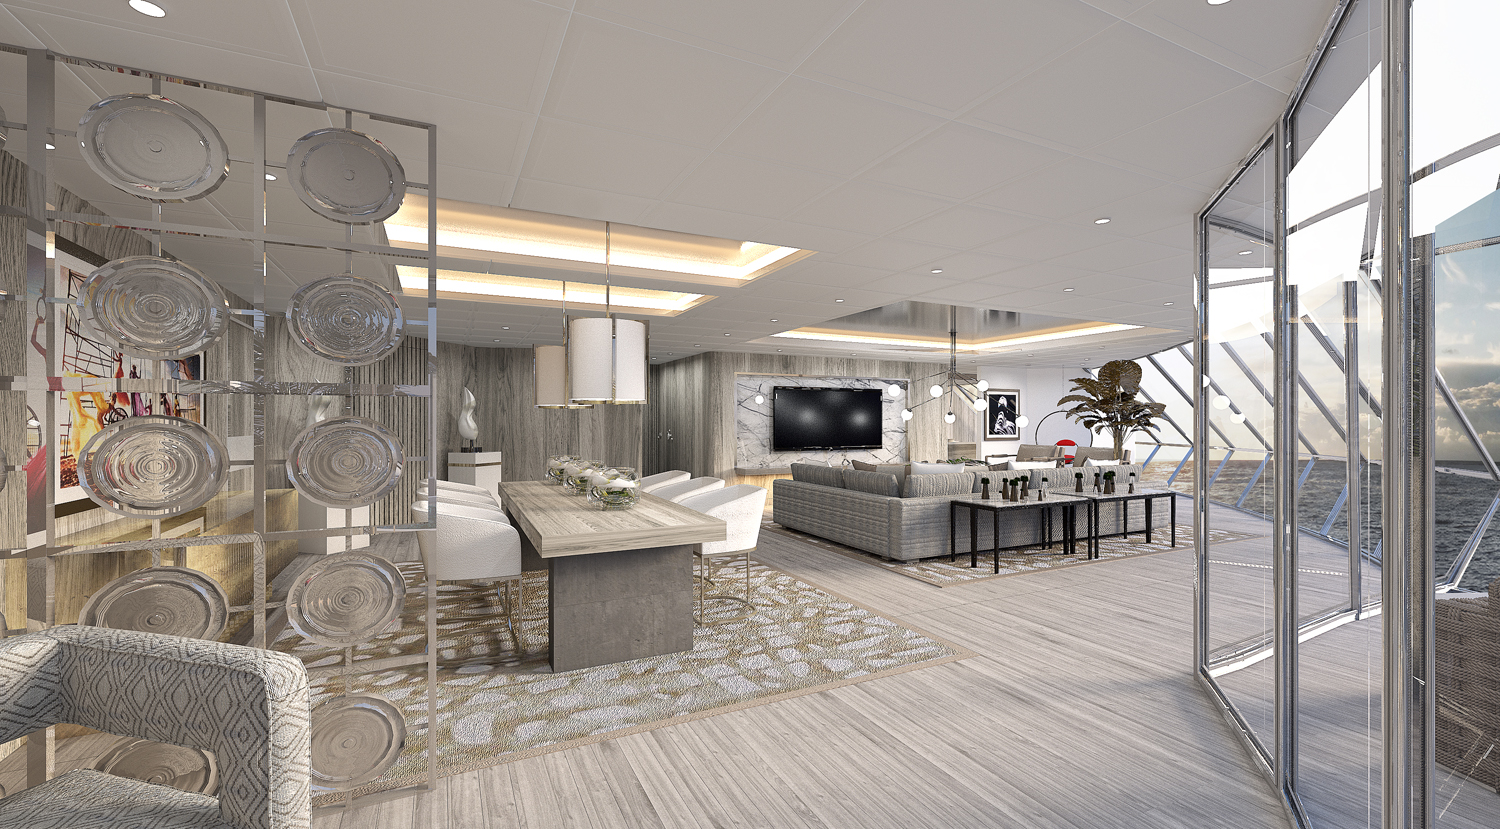 The Celebrity Edge will include the Iconic Suite, a new Edge-exclusive Suite Class category and the highest level of suites available on the ship.